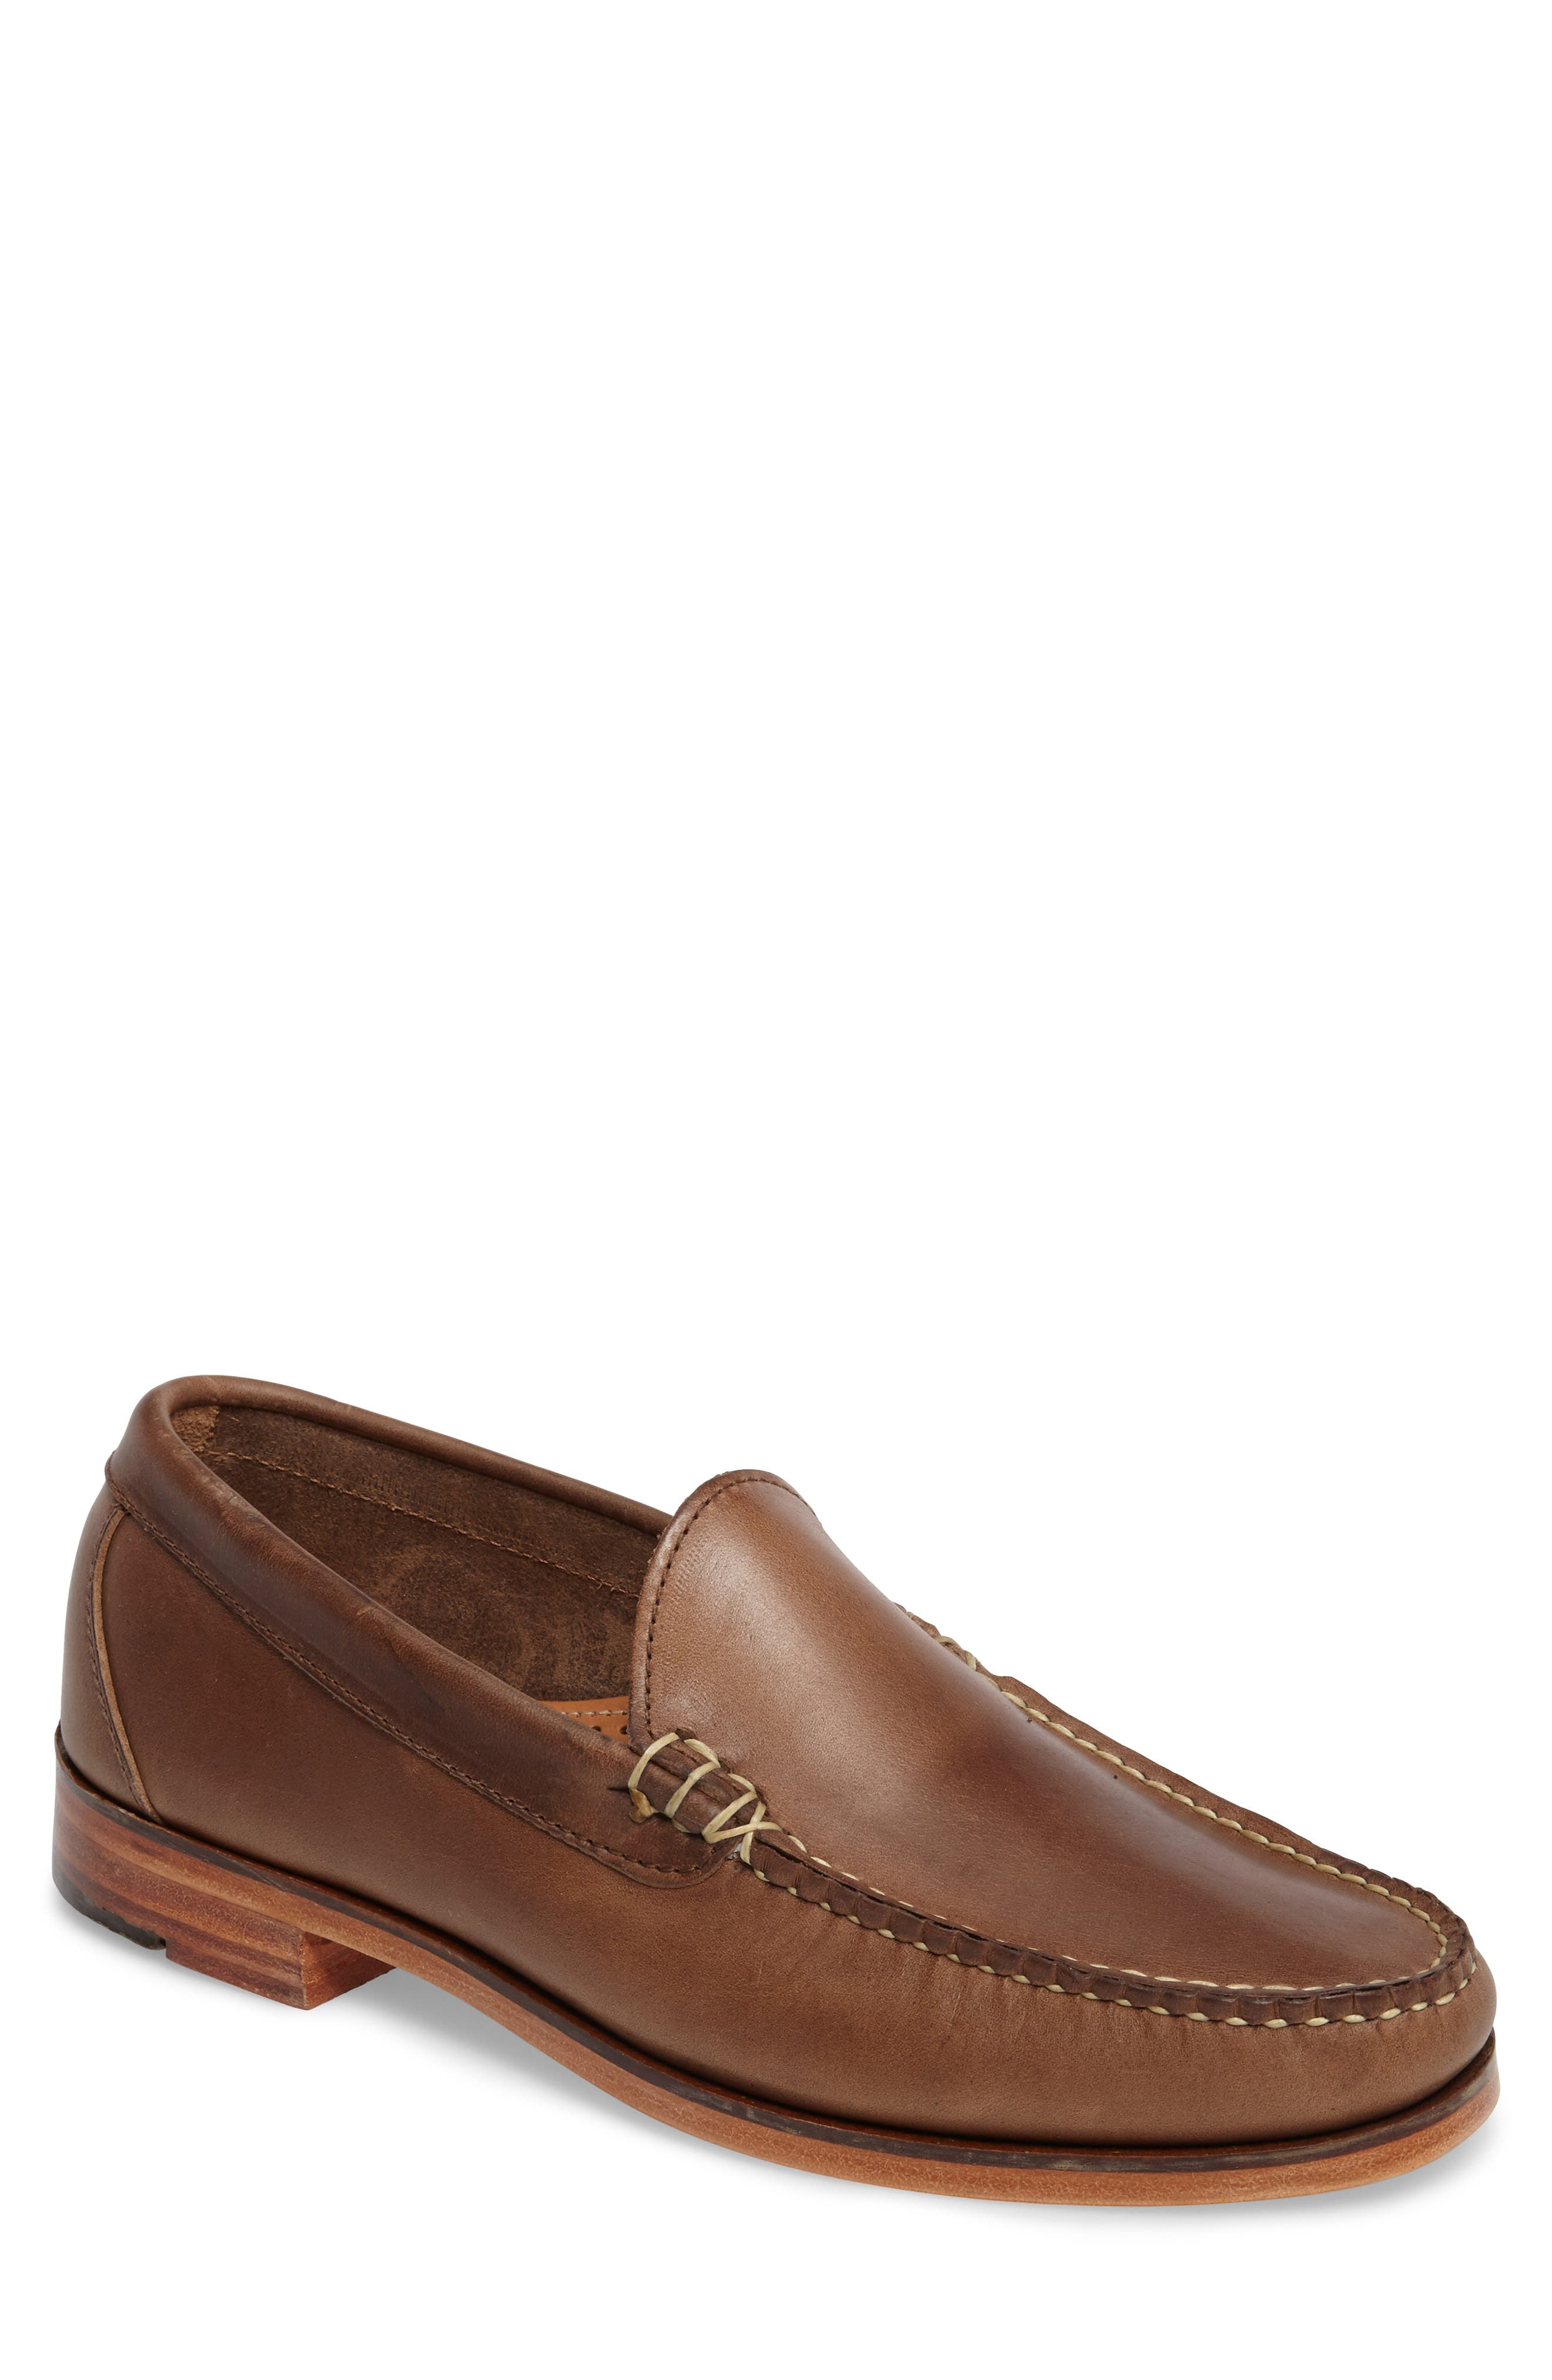 Natural Loafer,                             Main thumbnail 1, color,